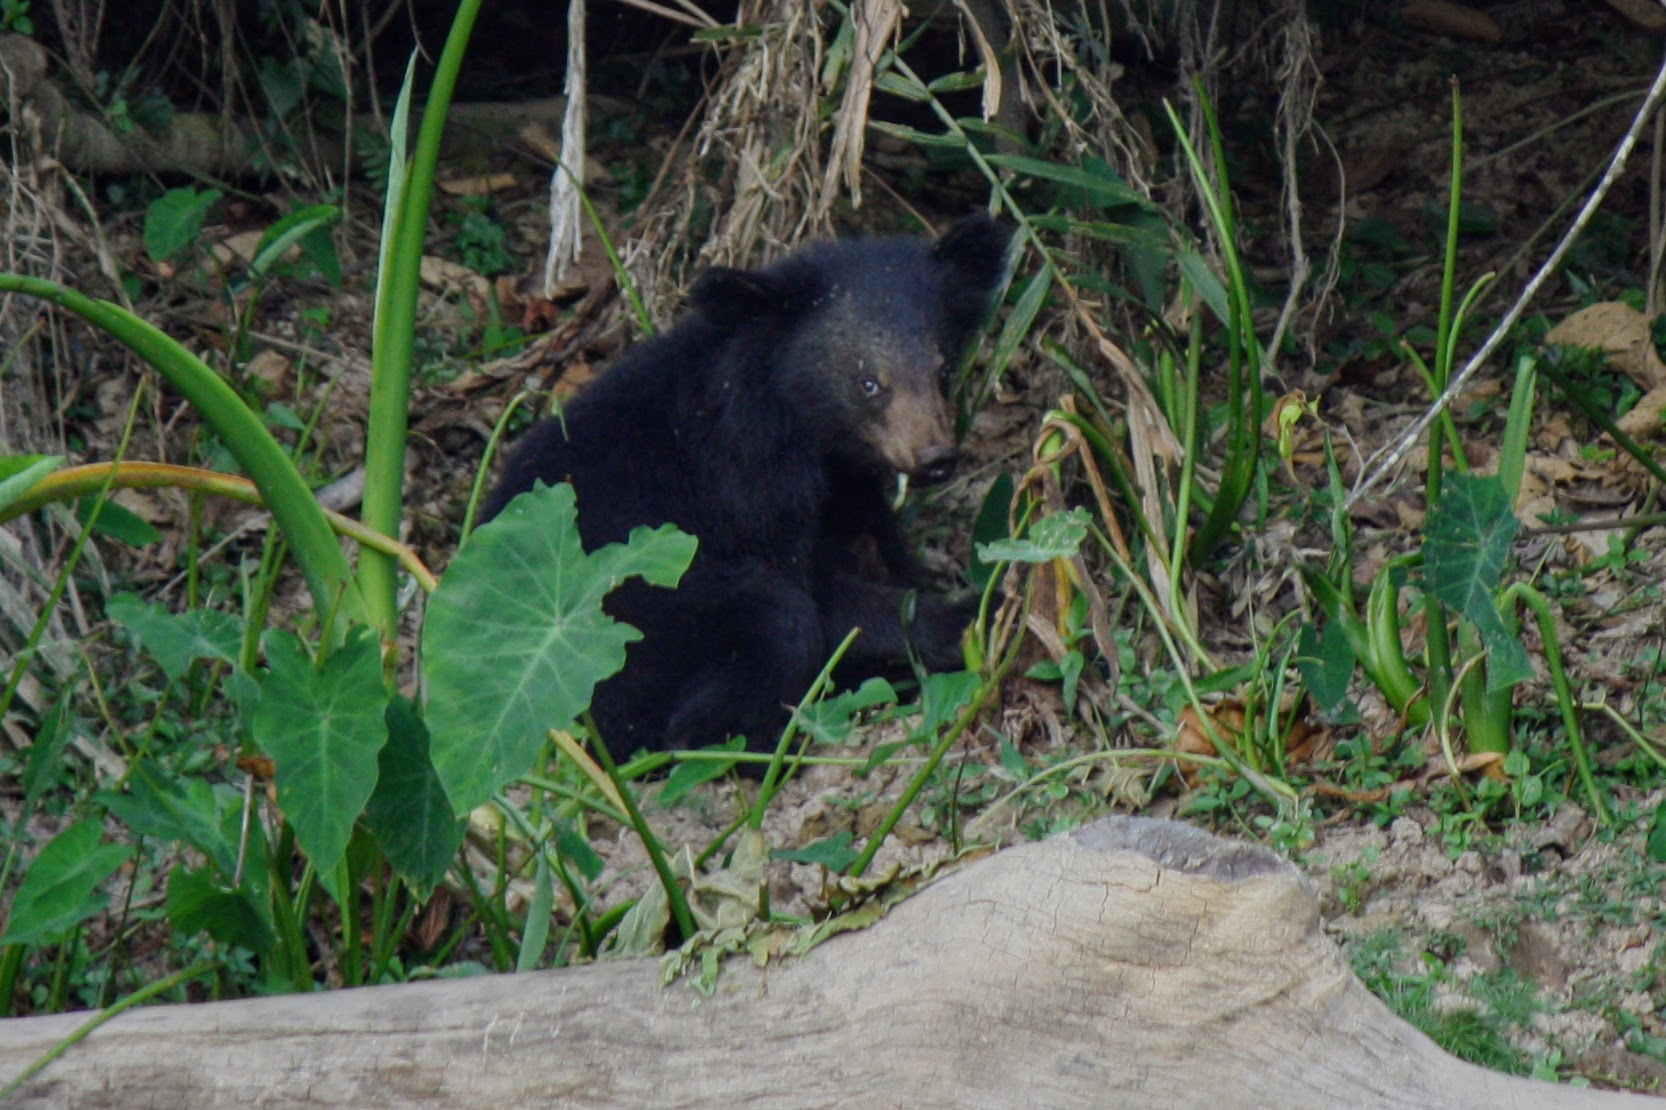 A baby Asiatic black bear, also known as a moon bear.